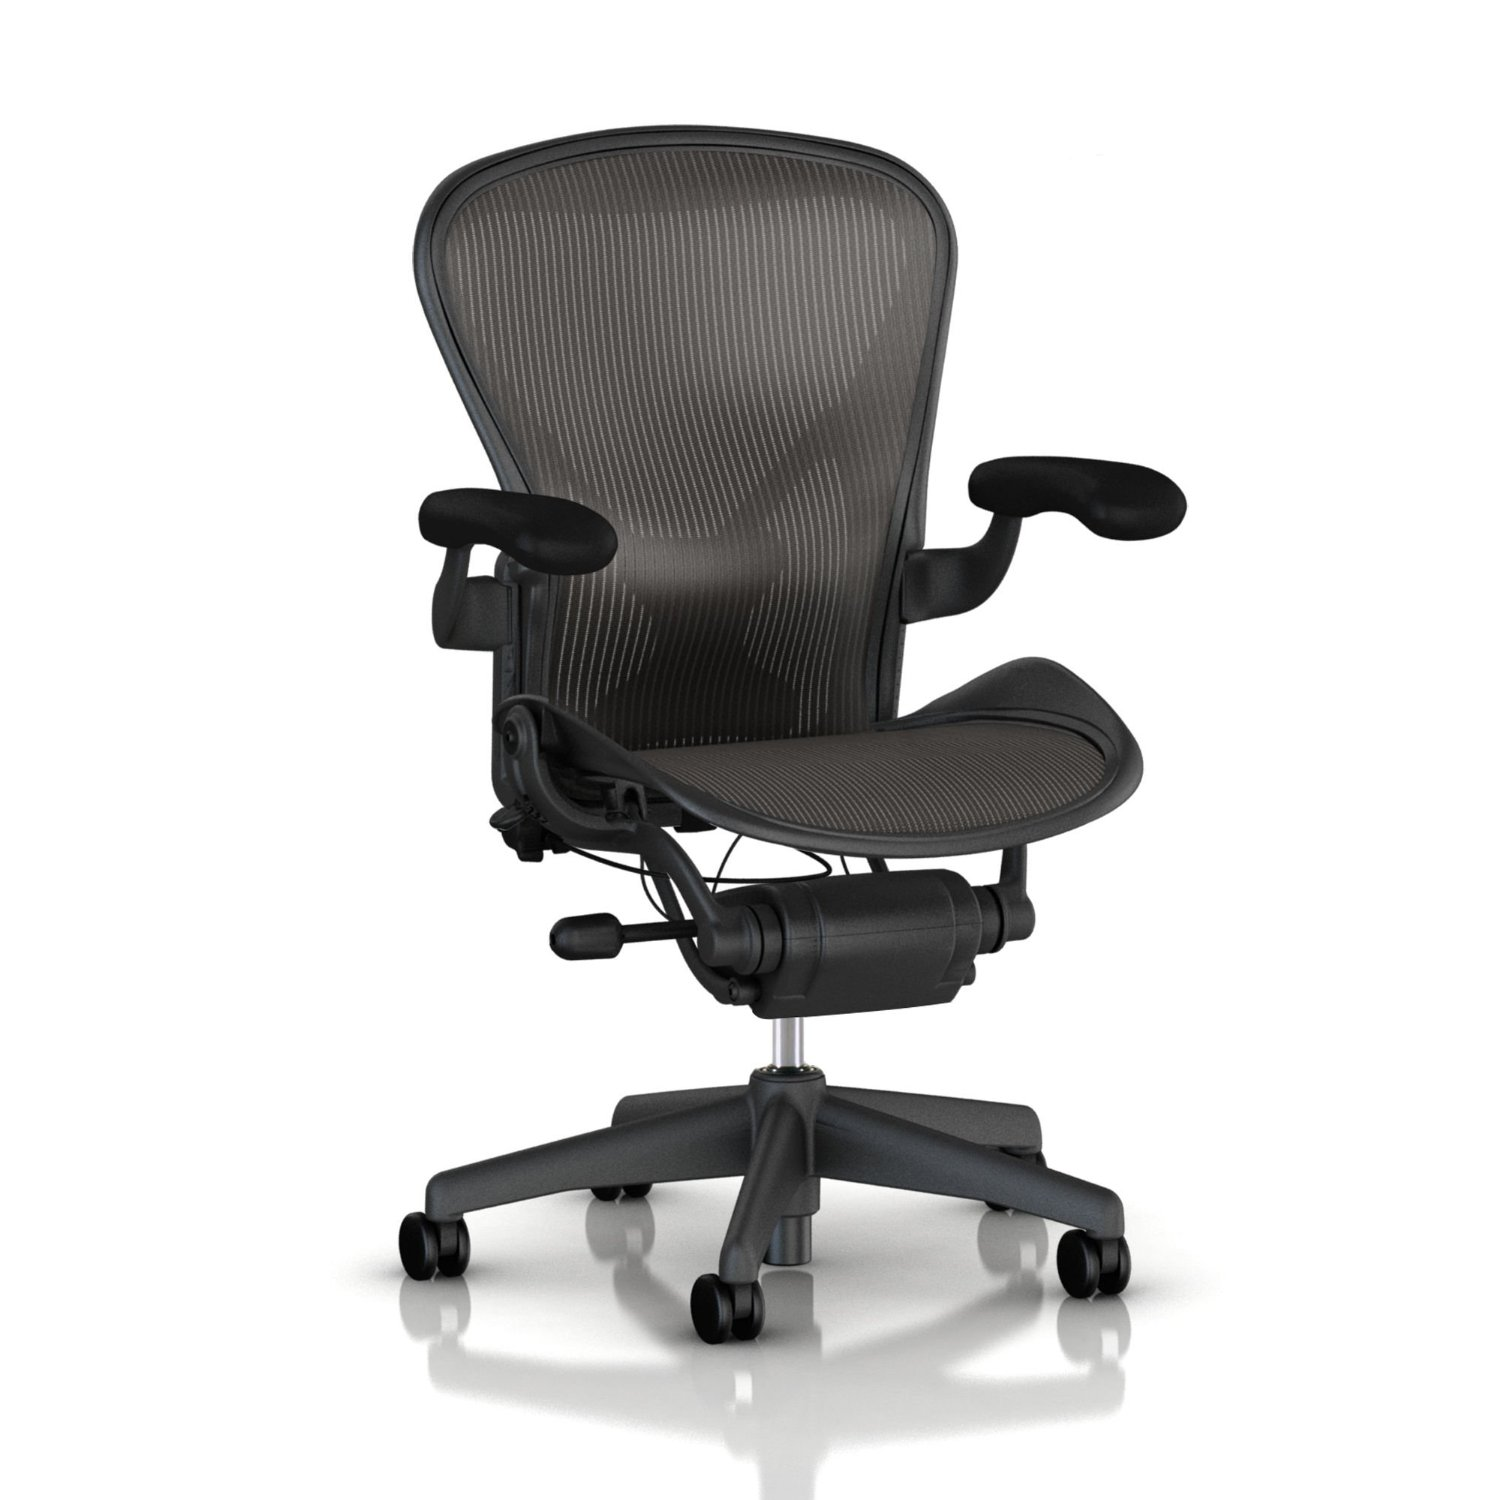 Executive Chair Buyer s Guide ficeChairExpert